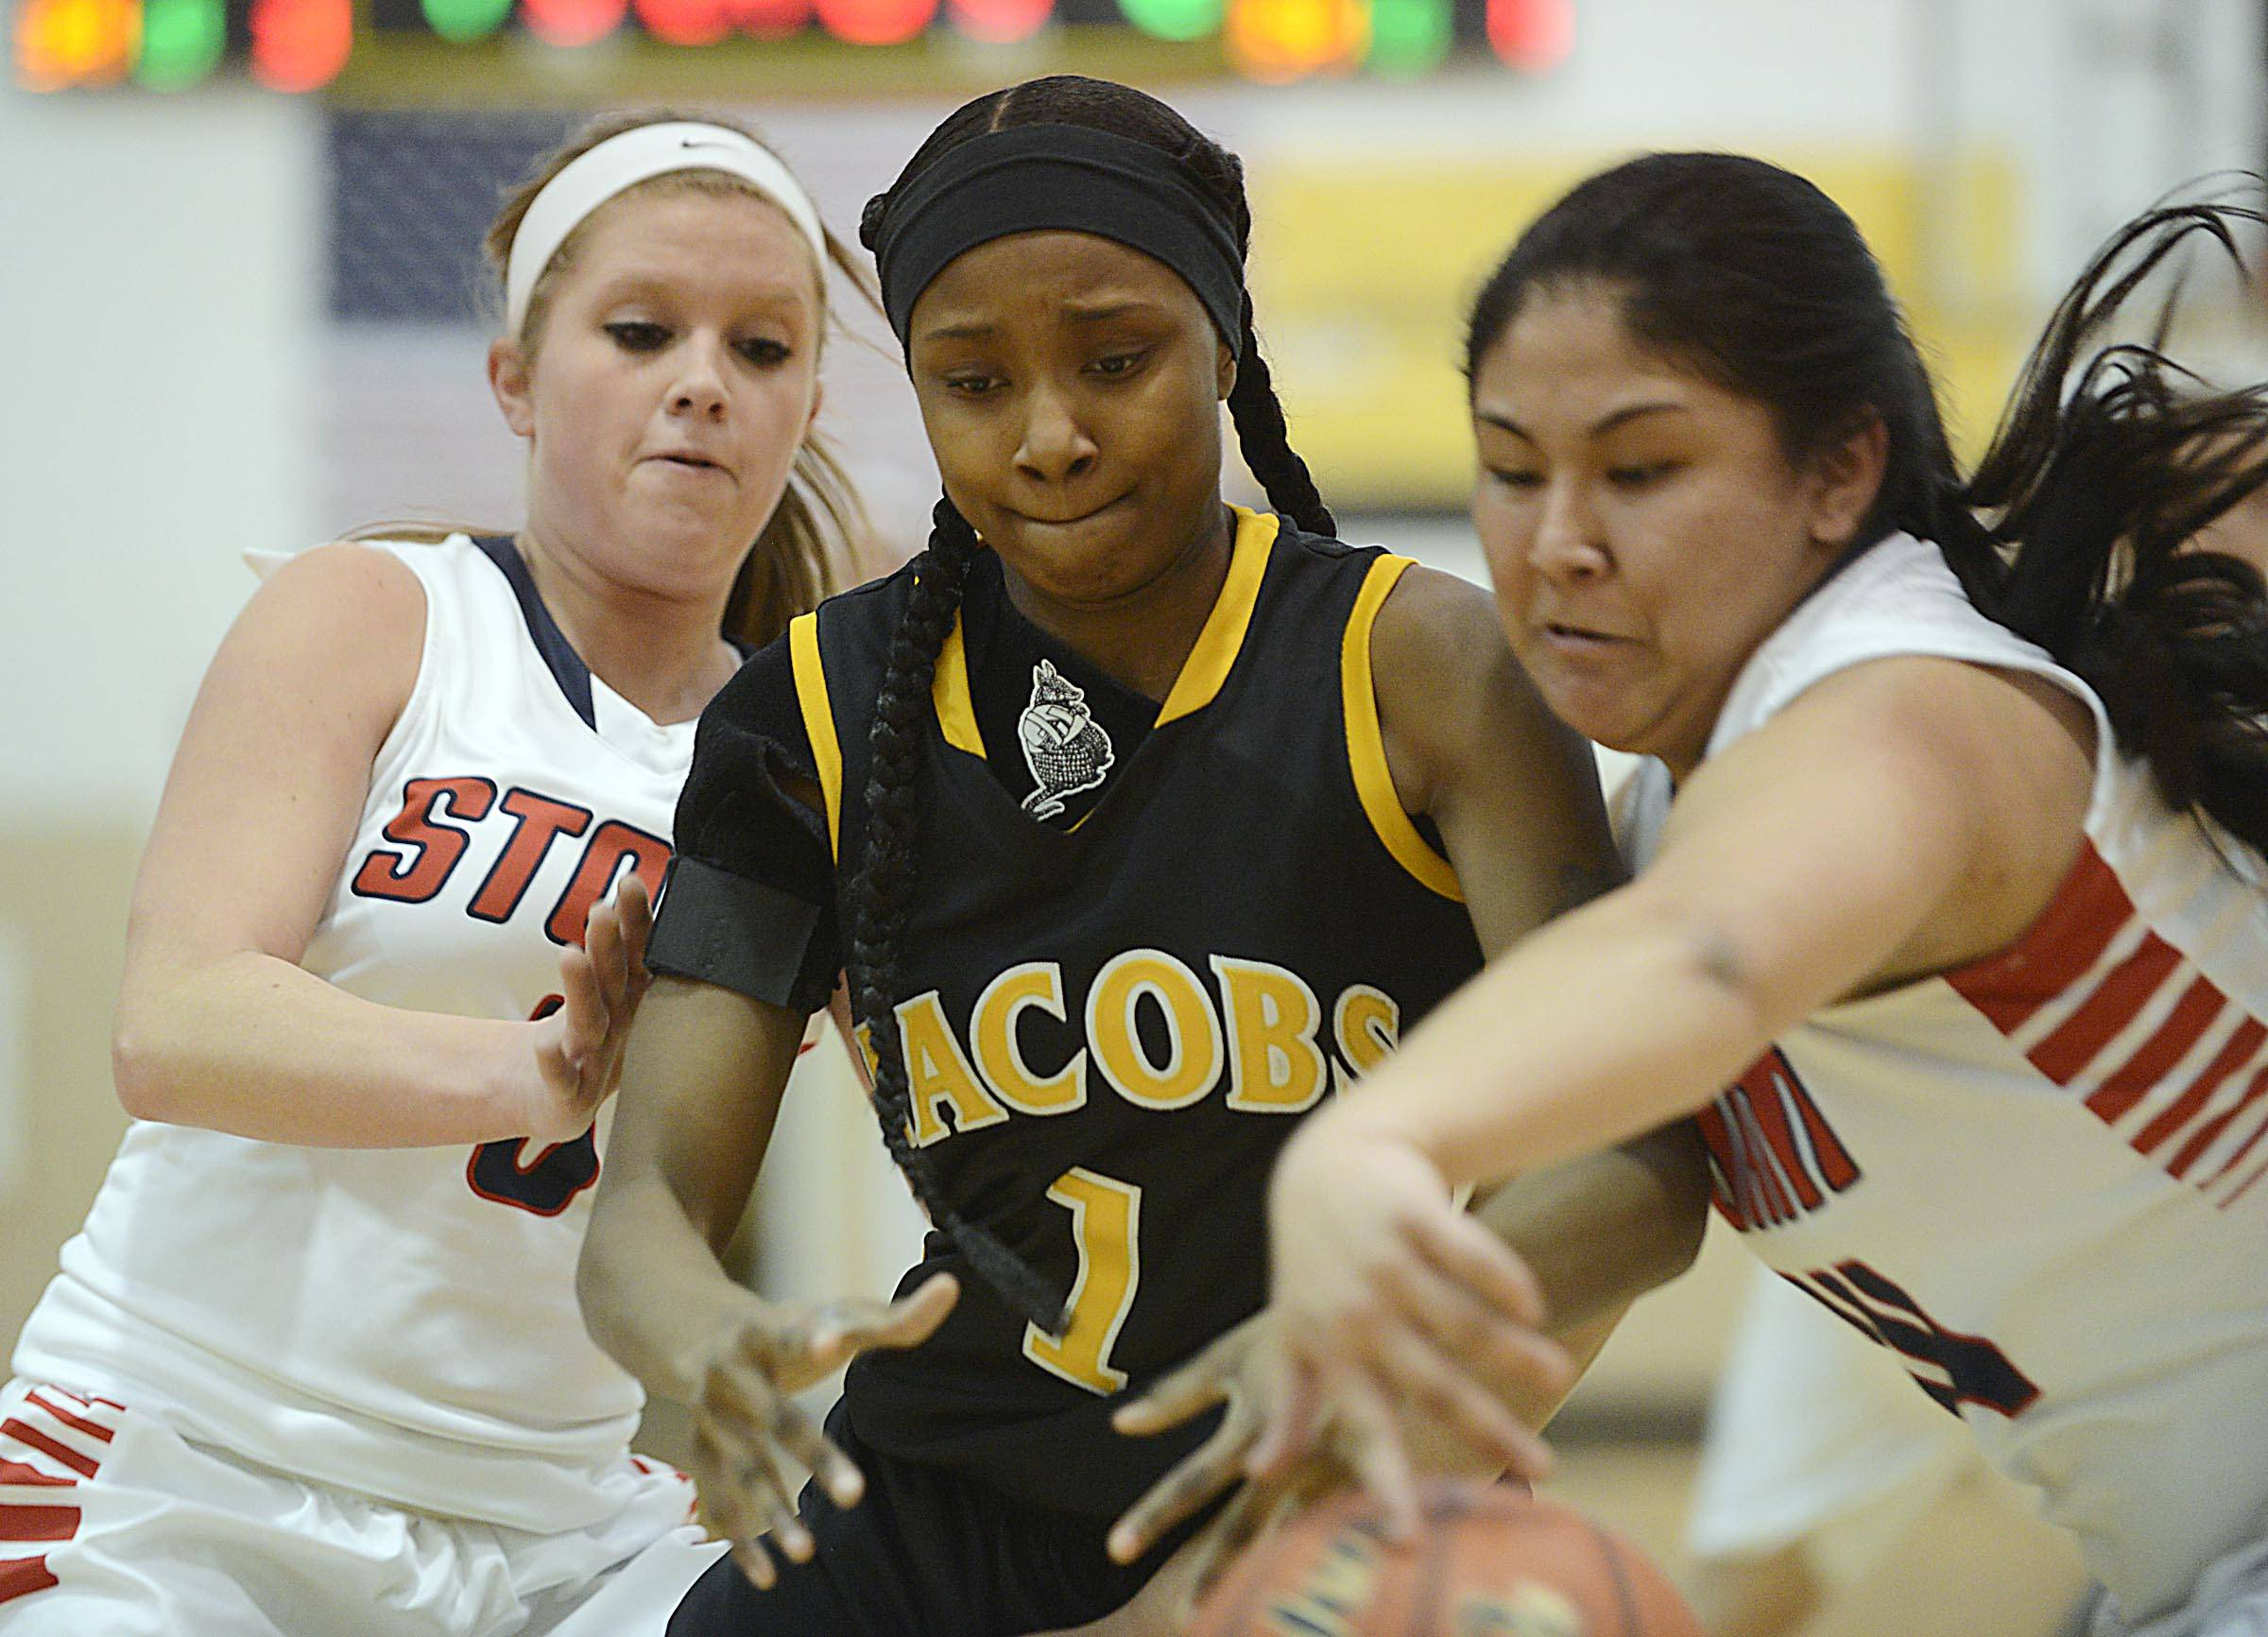 Images: South Elgin vs. Jacobs girls basketball